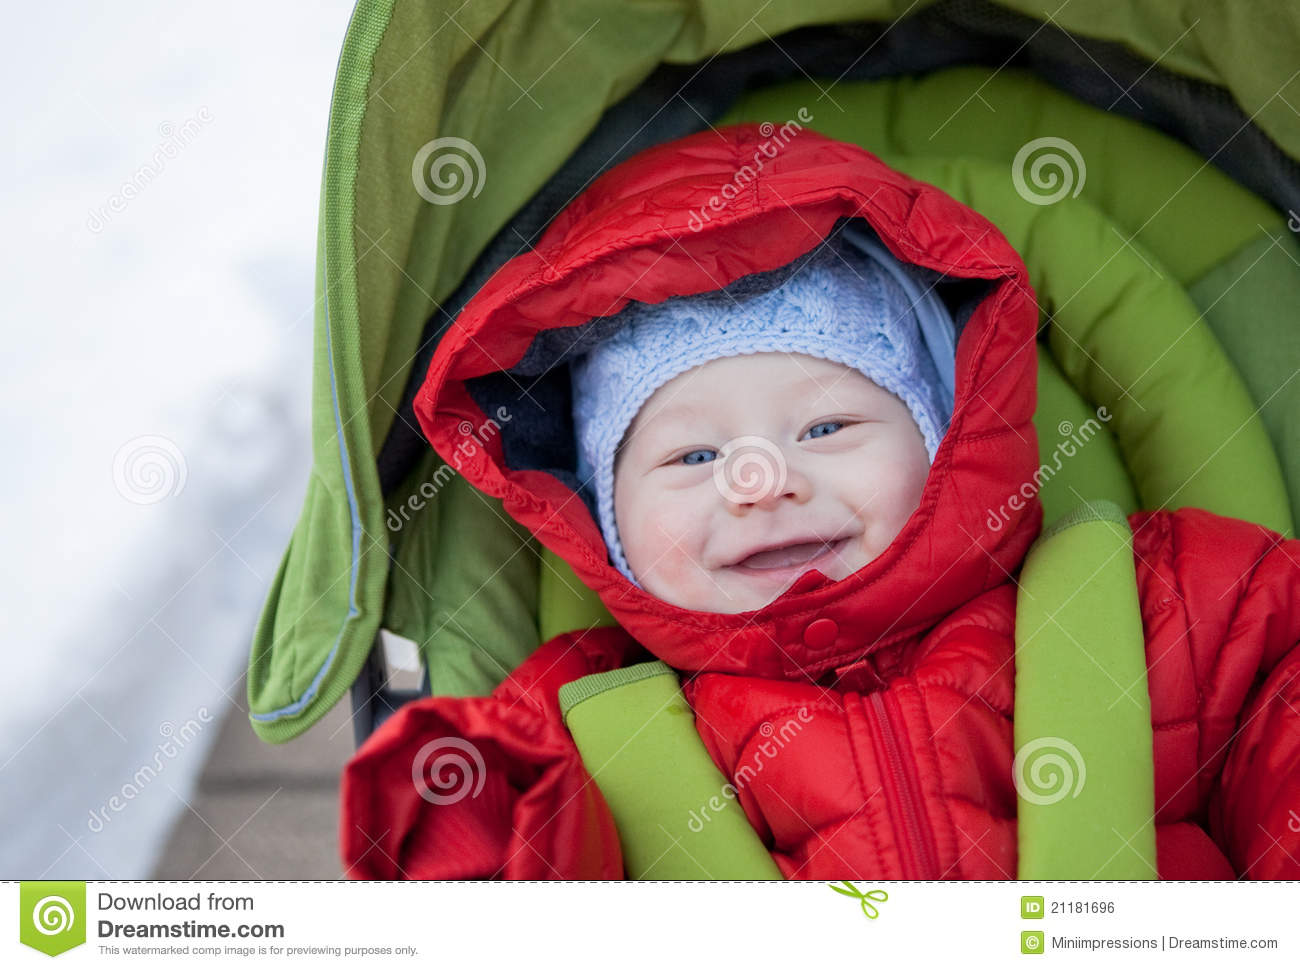 16d47d93f982 Adorable Baby Boy In Winter Jacket Stock Photo - Image of beautiful ...